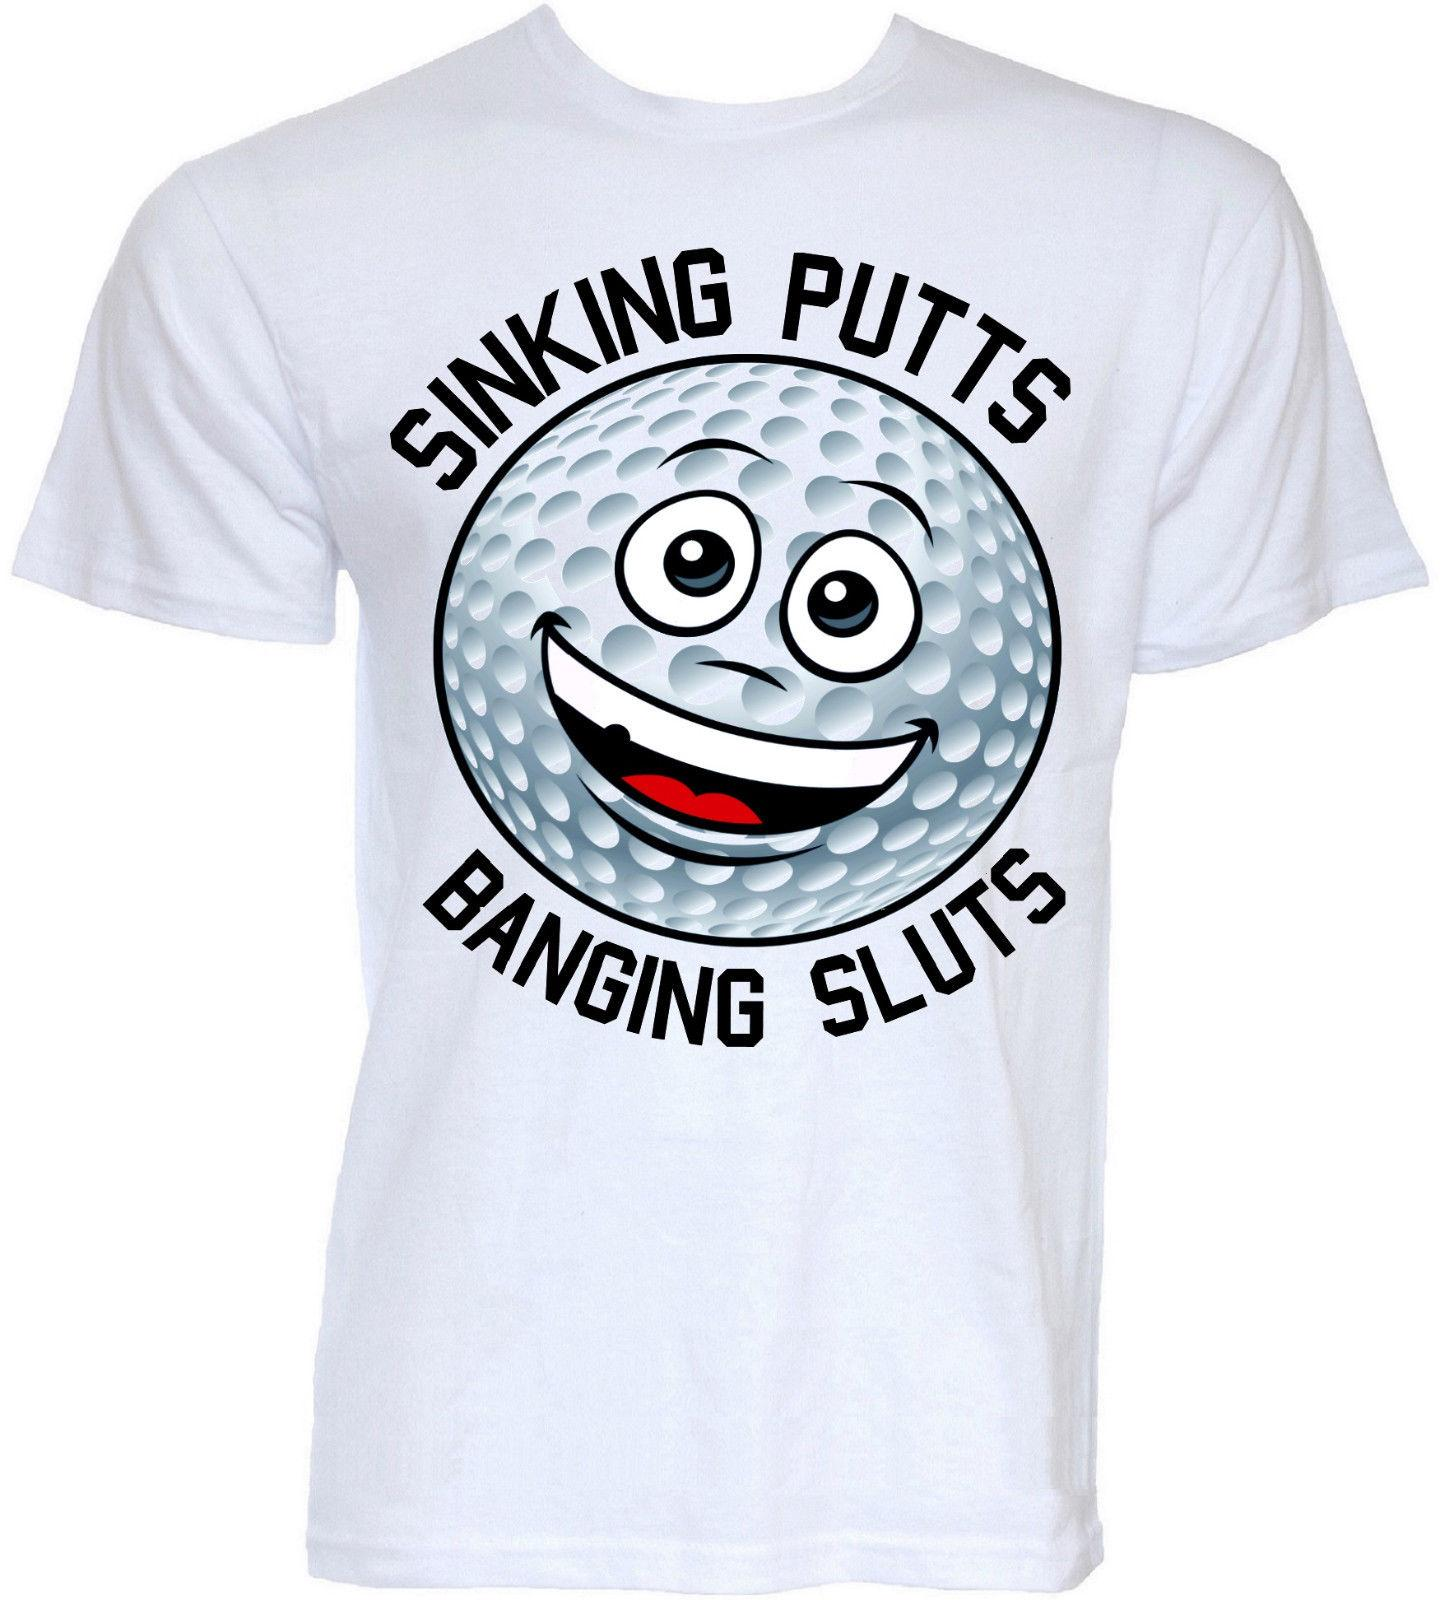 40c4311f2 MENS FUNNY GOLF T SHIRTS COOL NOVELTY GOLFER GOLFING JOKE SLOGAN RUDE GIFTS  Funny Unisex Casual Tee Gift Cool Tees Graphic T Shirt From Noveltgifts, ...